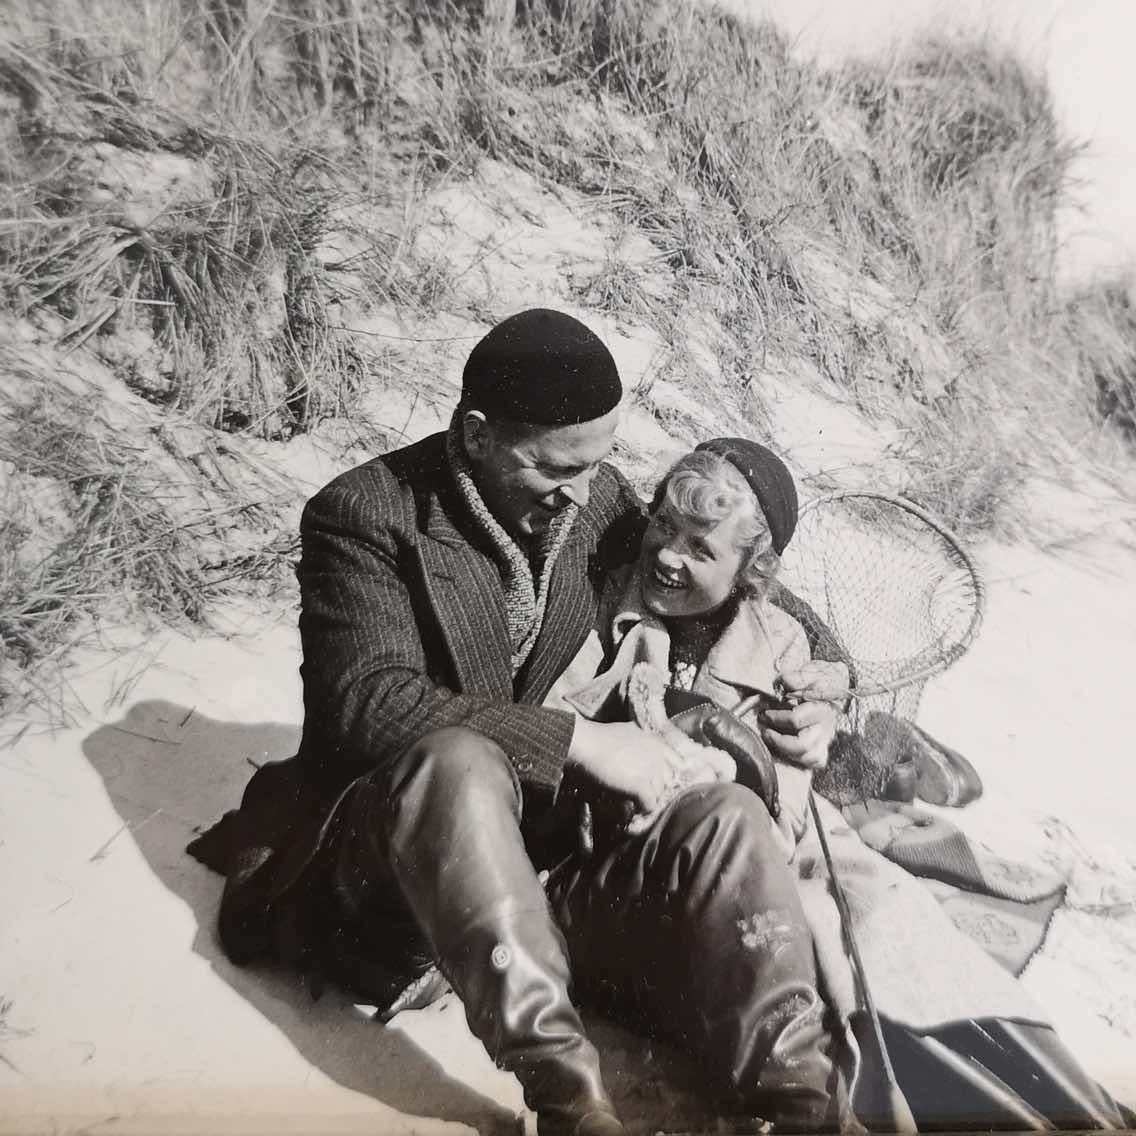 Eilert Smith and wife Aud at the beach